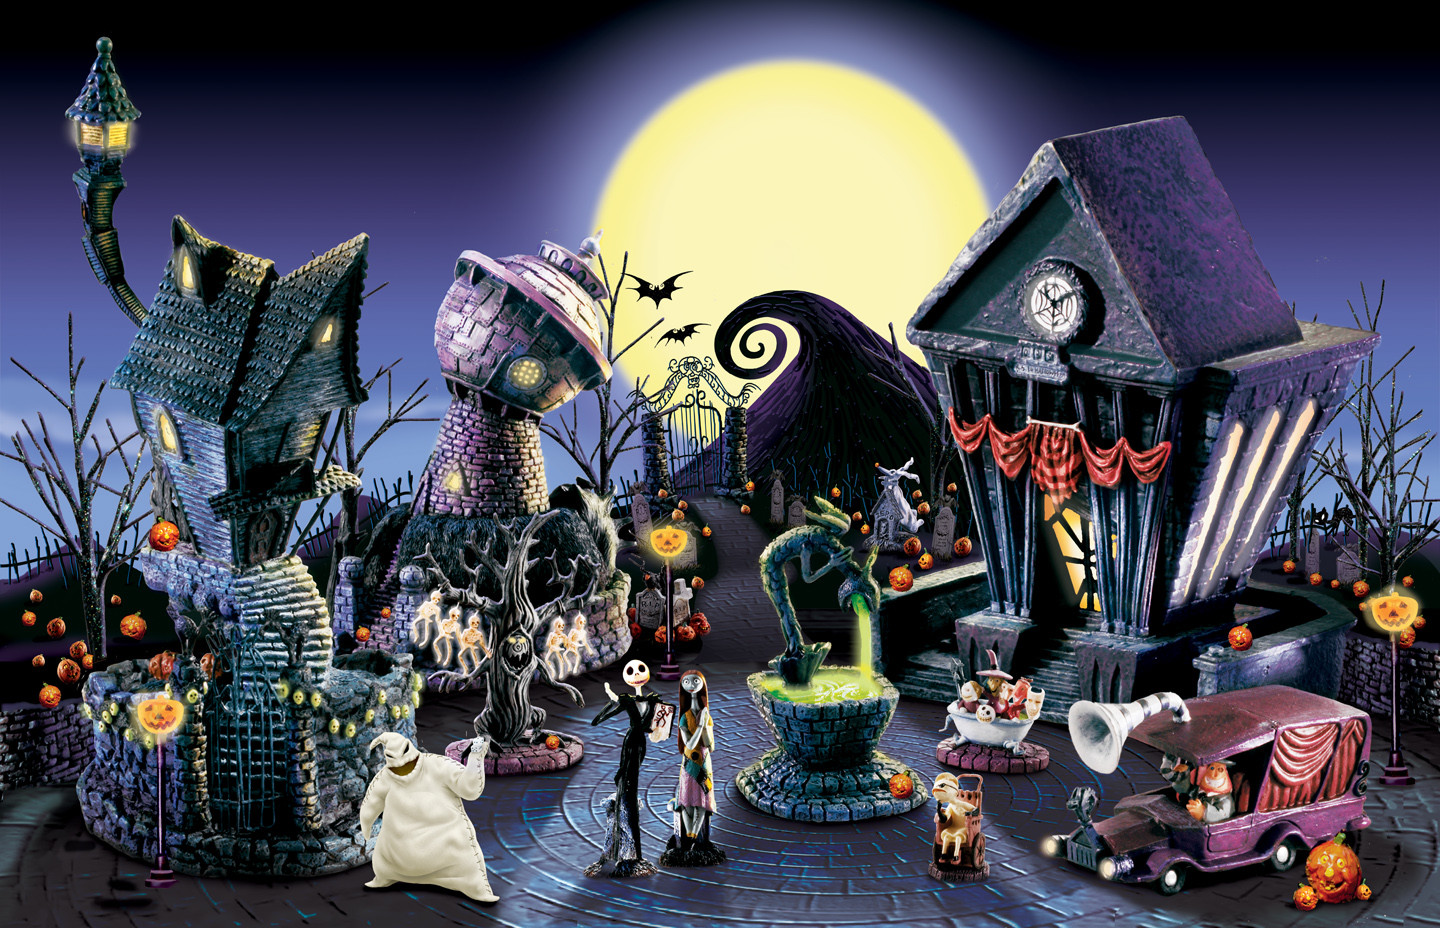 ArtStation - Nightmare Before Christmas Village, Joe Viego